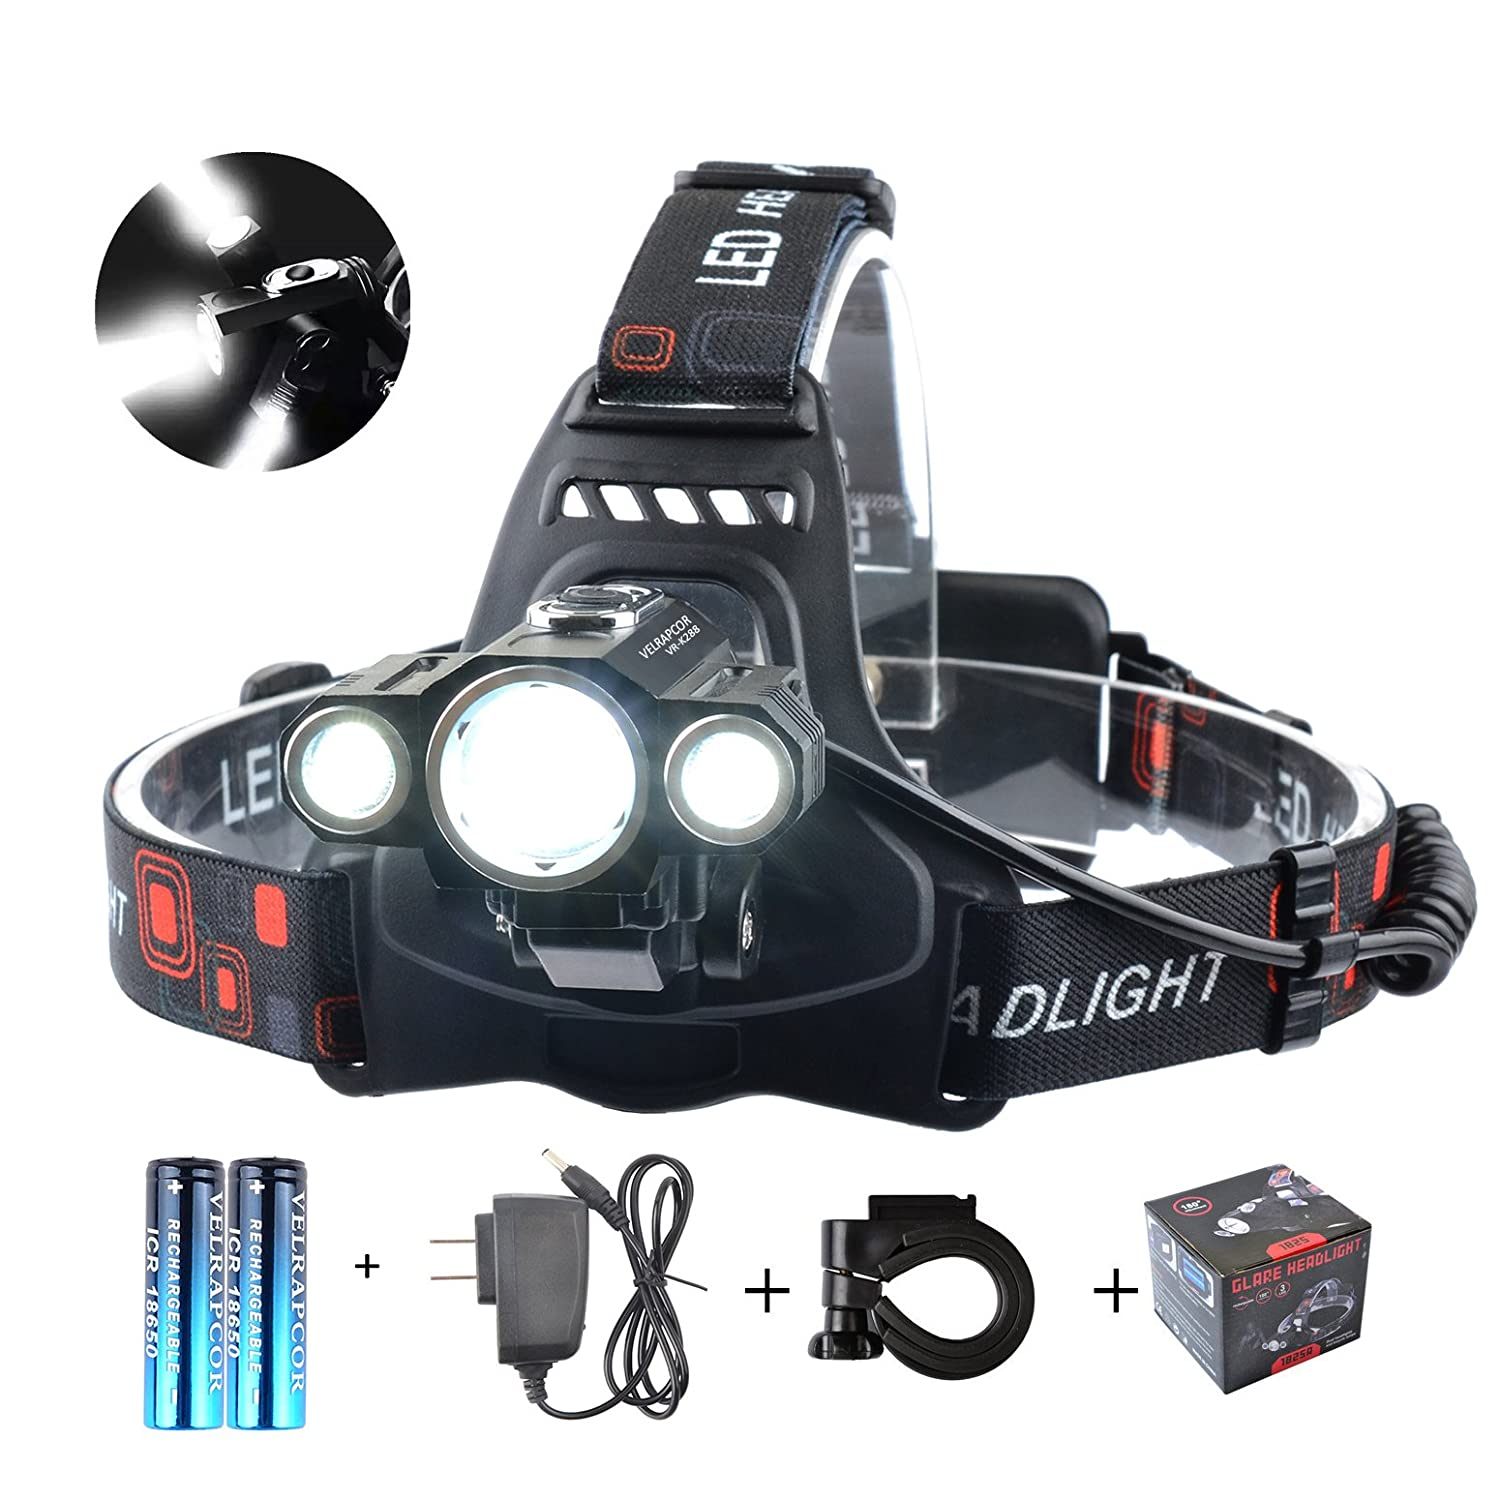 VELRAPCOR Brightest LED Headlamp Headlight CREE 1 T6 2 R5 4 Modes 5000 Lumens Waterproof Rechargeable 18650 Batteries, Black